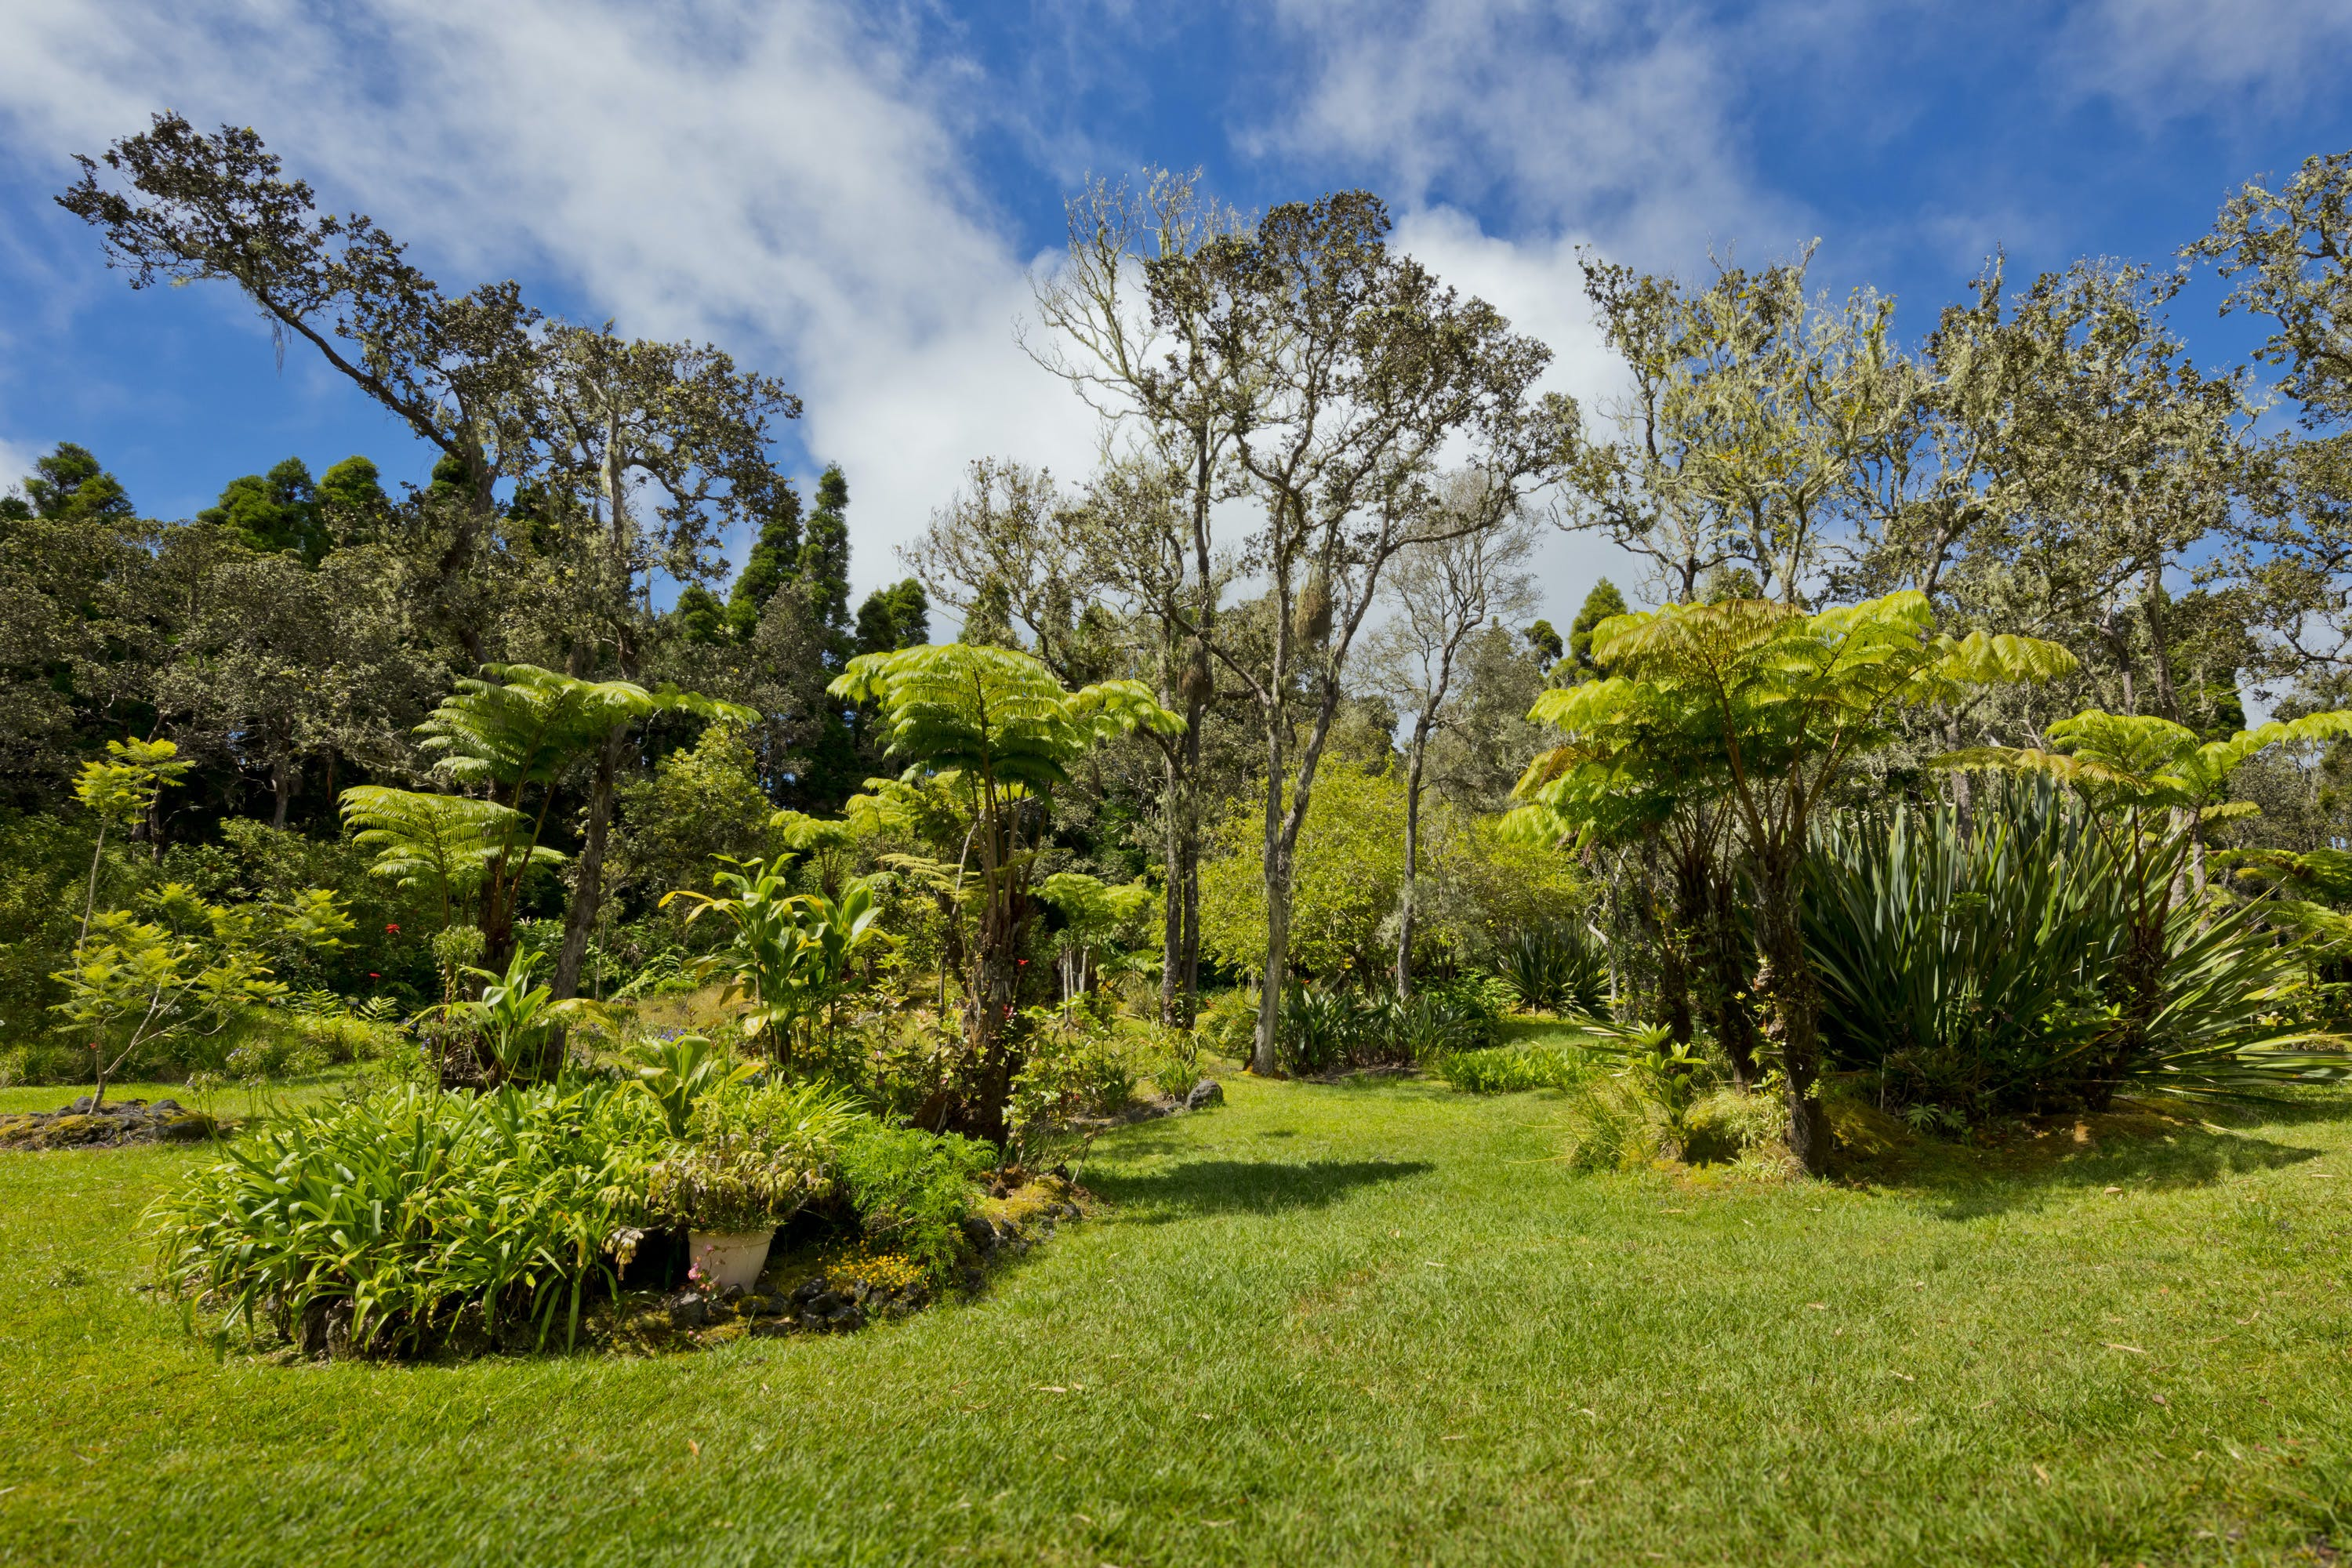 Hale 'Ohu garden and park